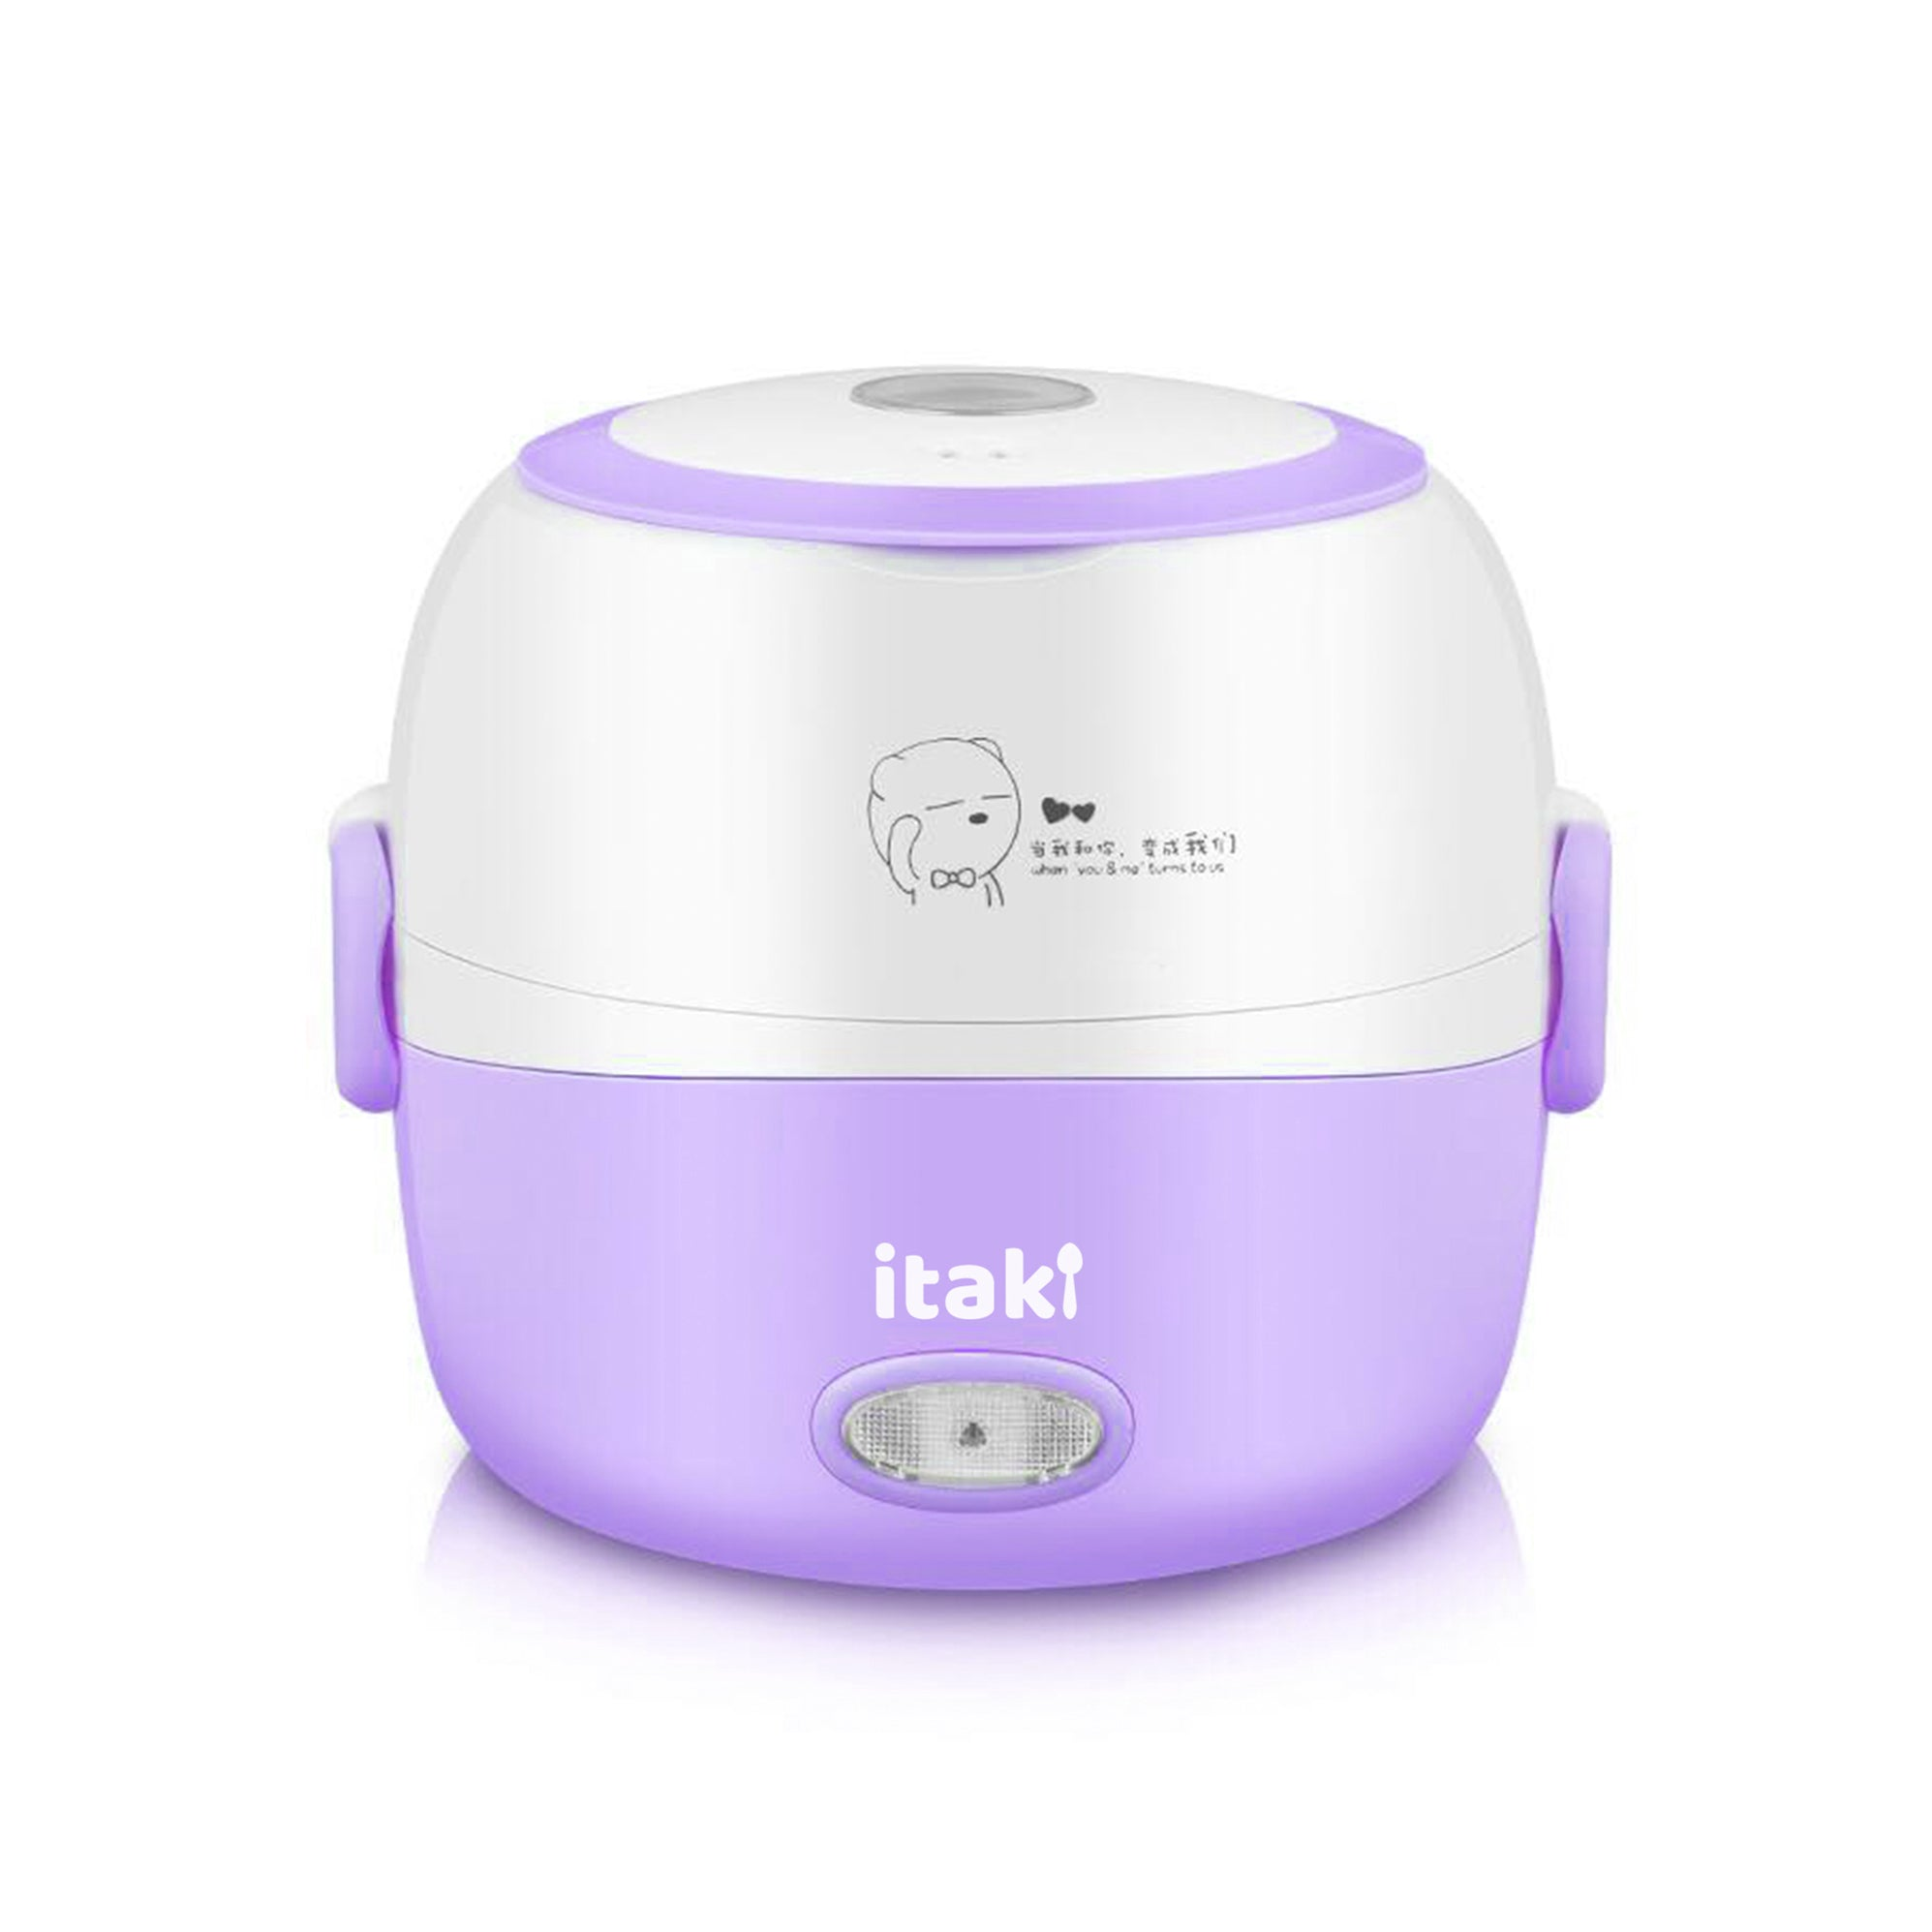 Itaki Chef Pro Lunch box